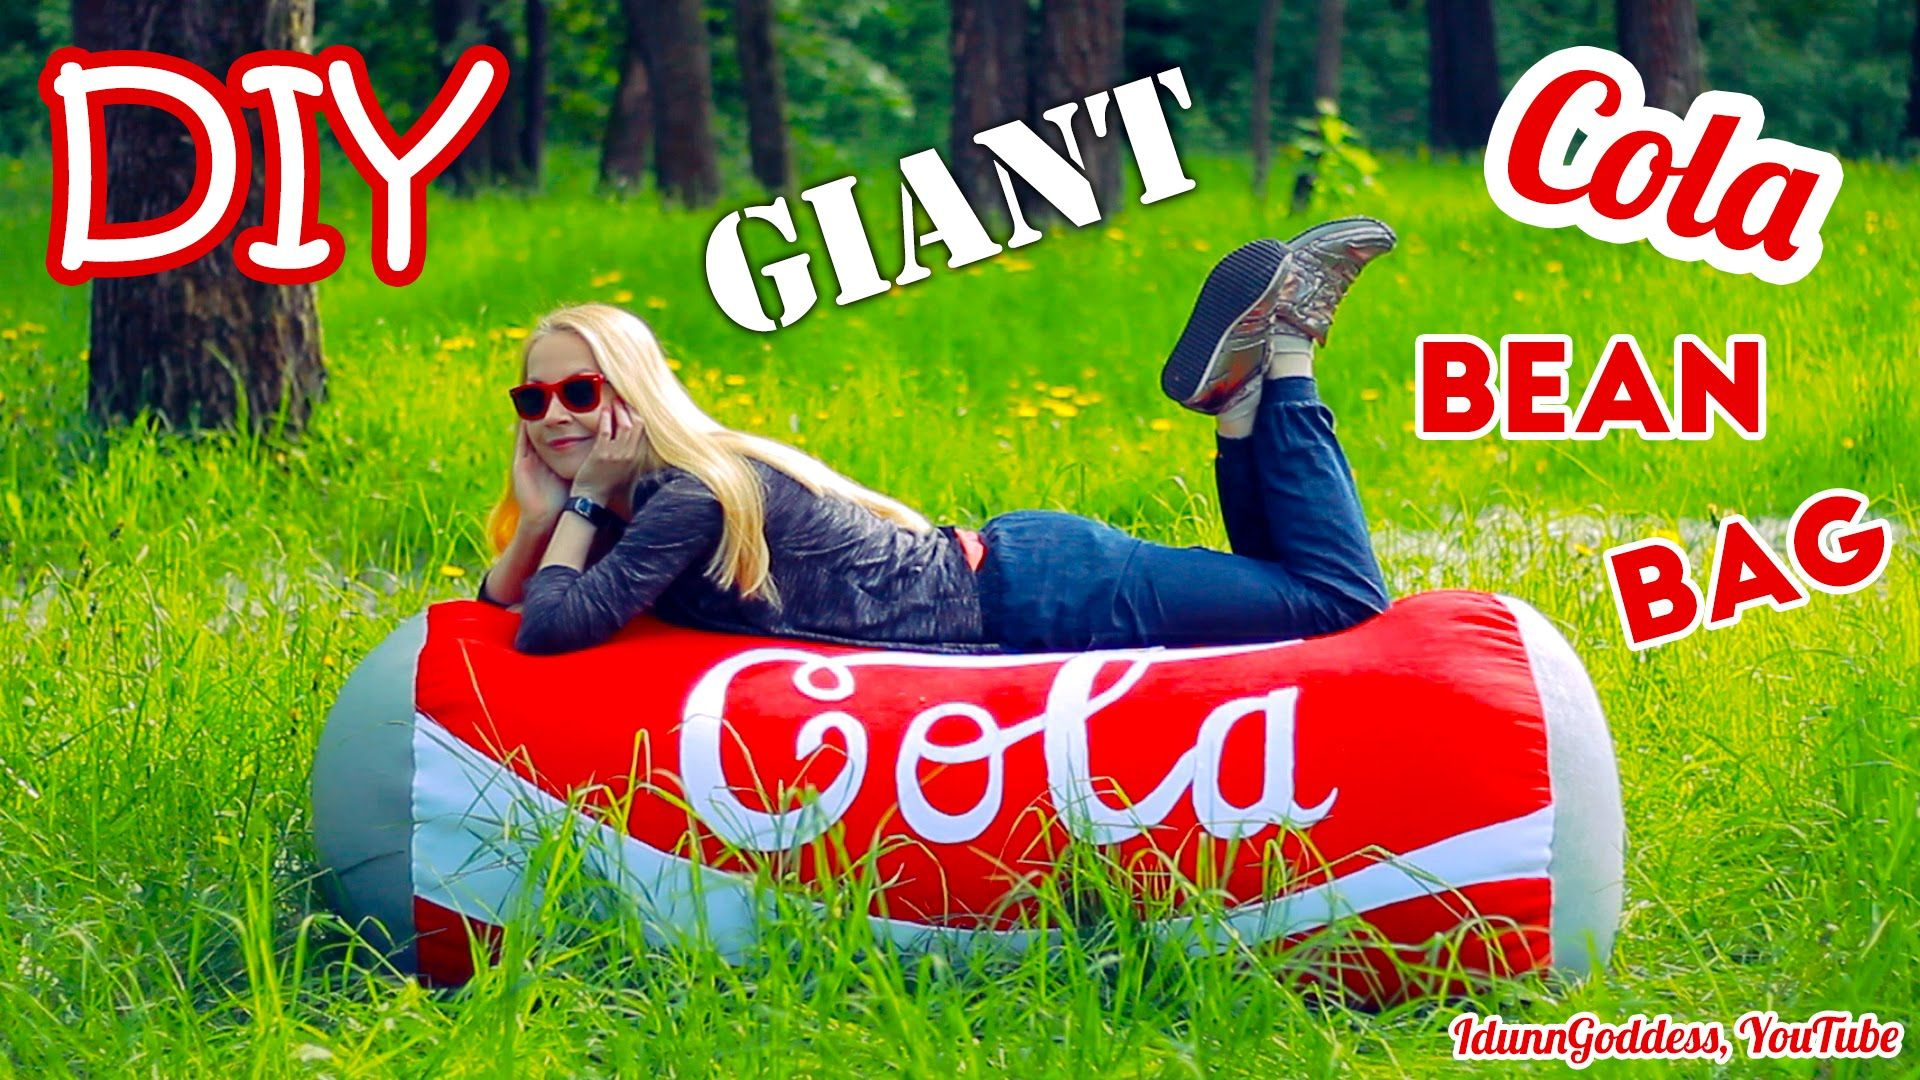 How To Make A Giant Cola Can Bean Bag Chair – DIY Super Giant Coca-Cola ...